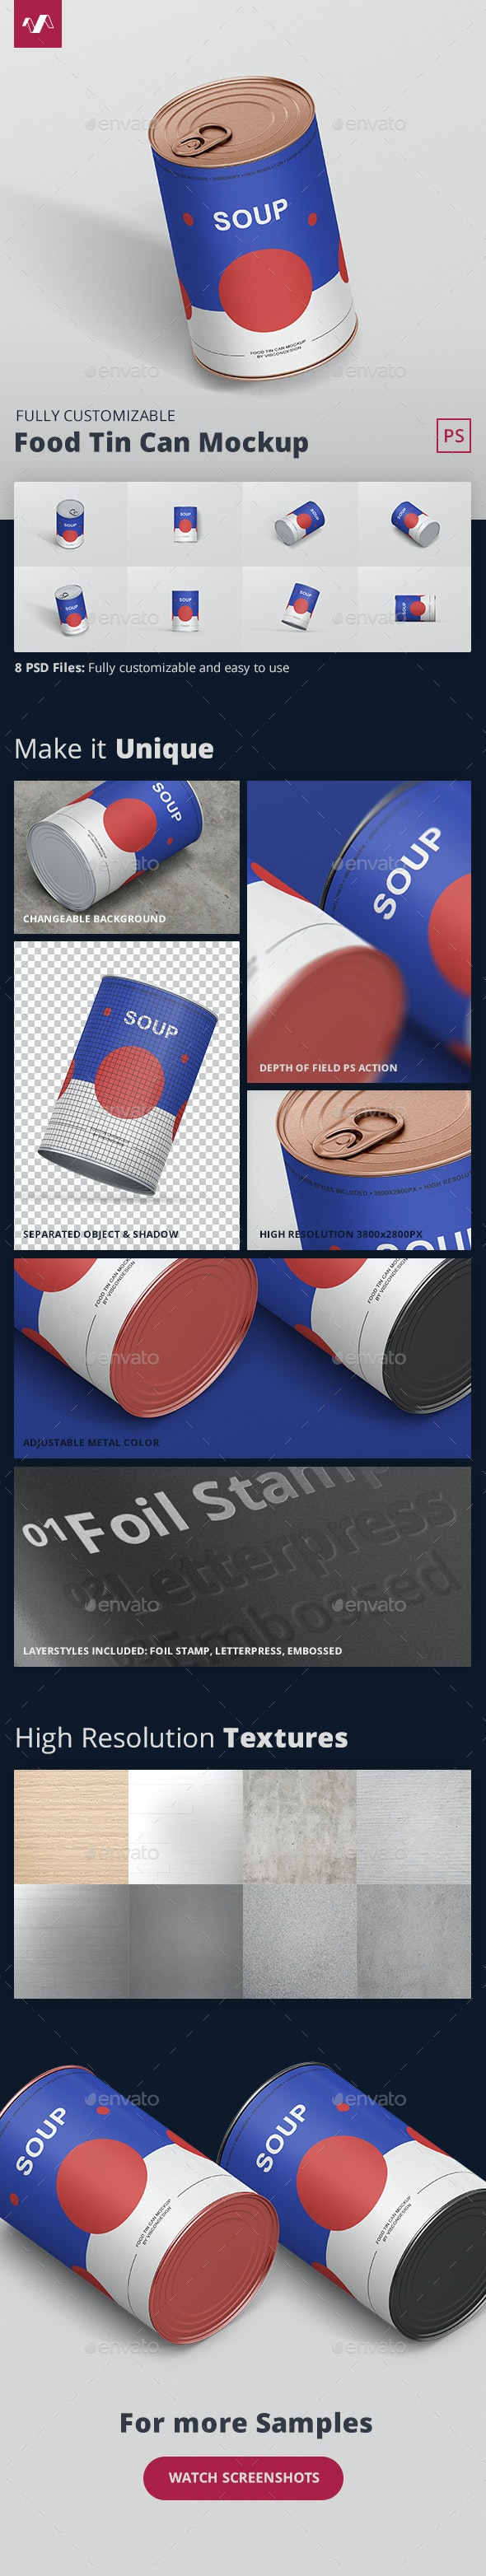 Food Tin Can Mockup - Food and Drink Packaging